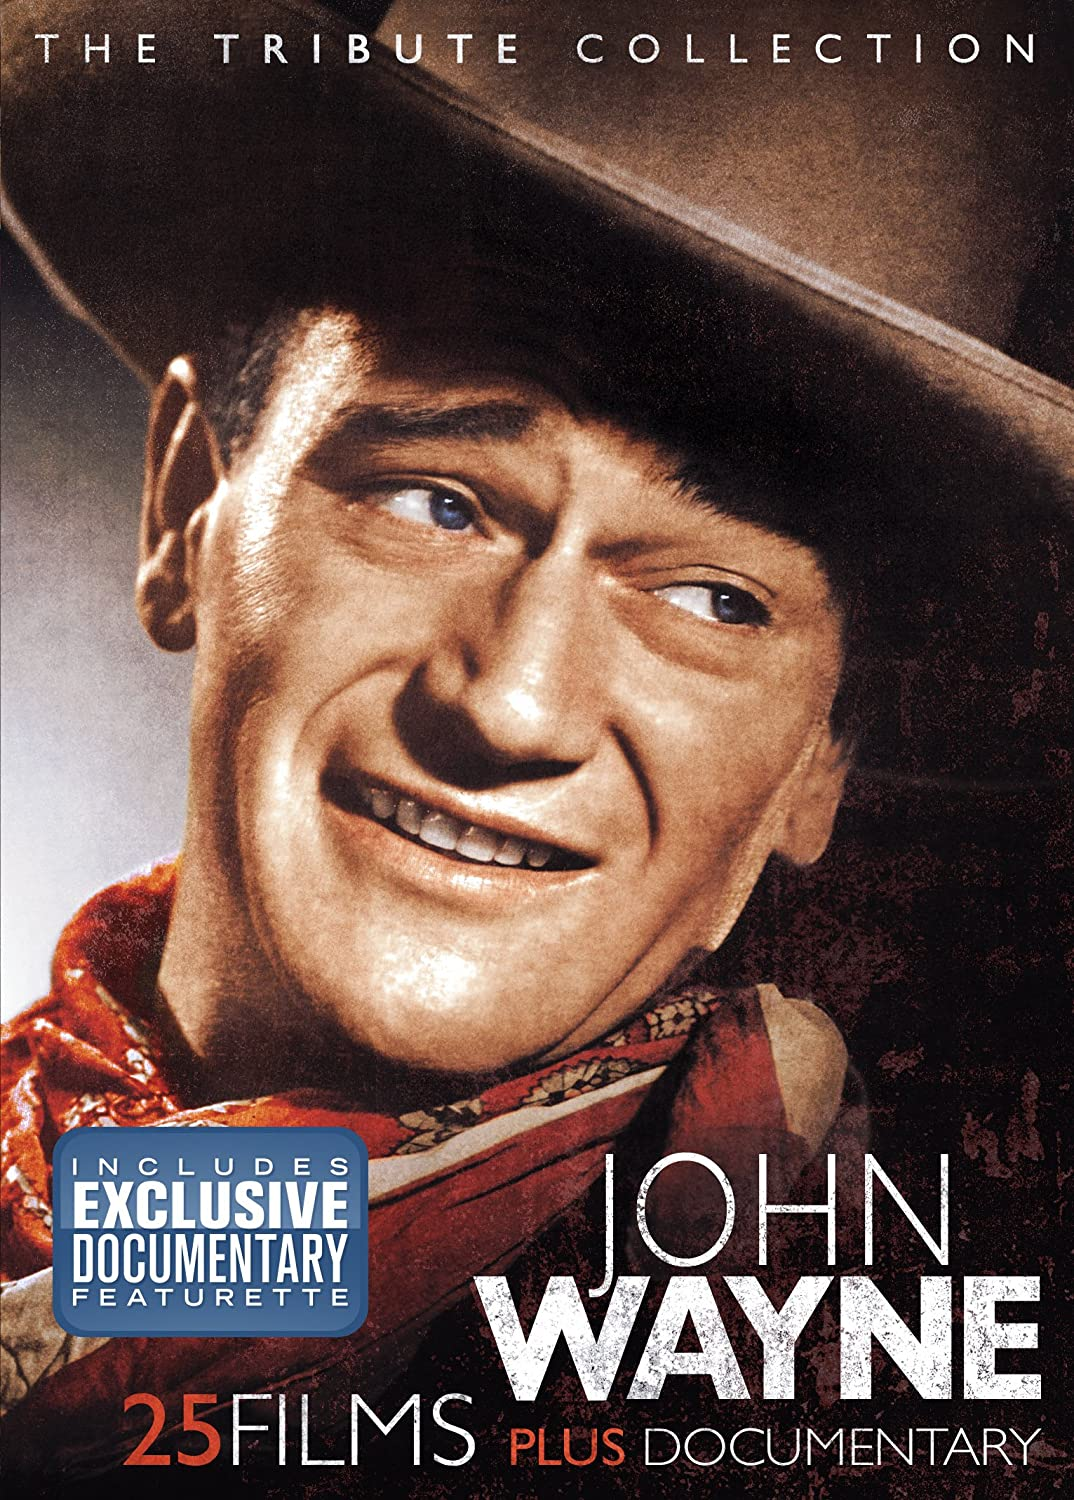 John Wayne - Tribute Collection The Mail order New color